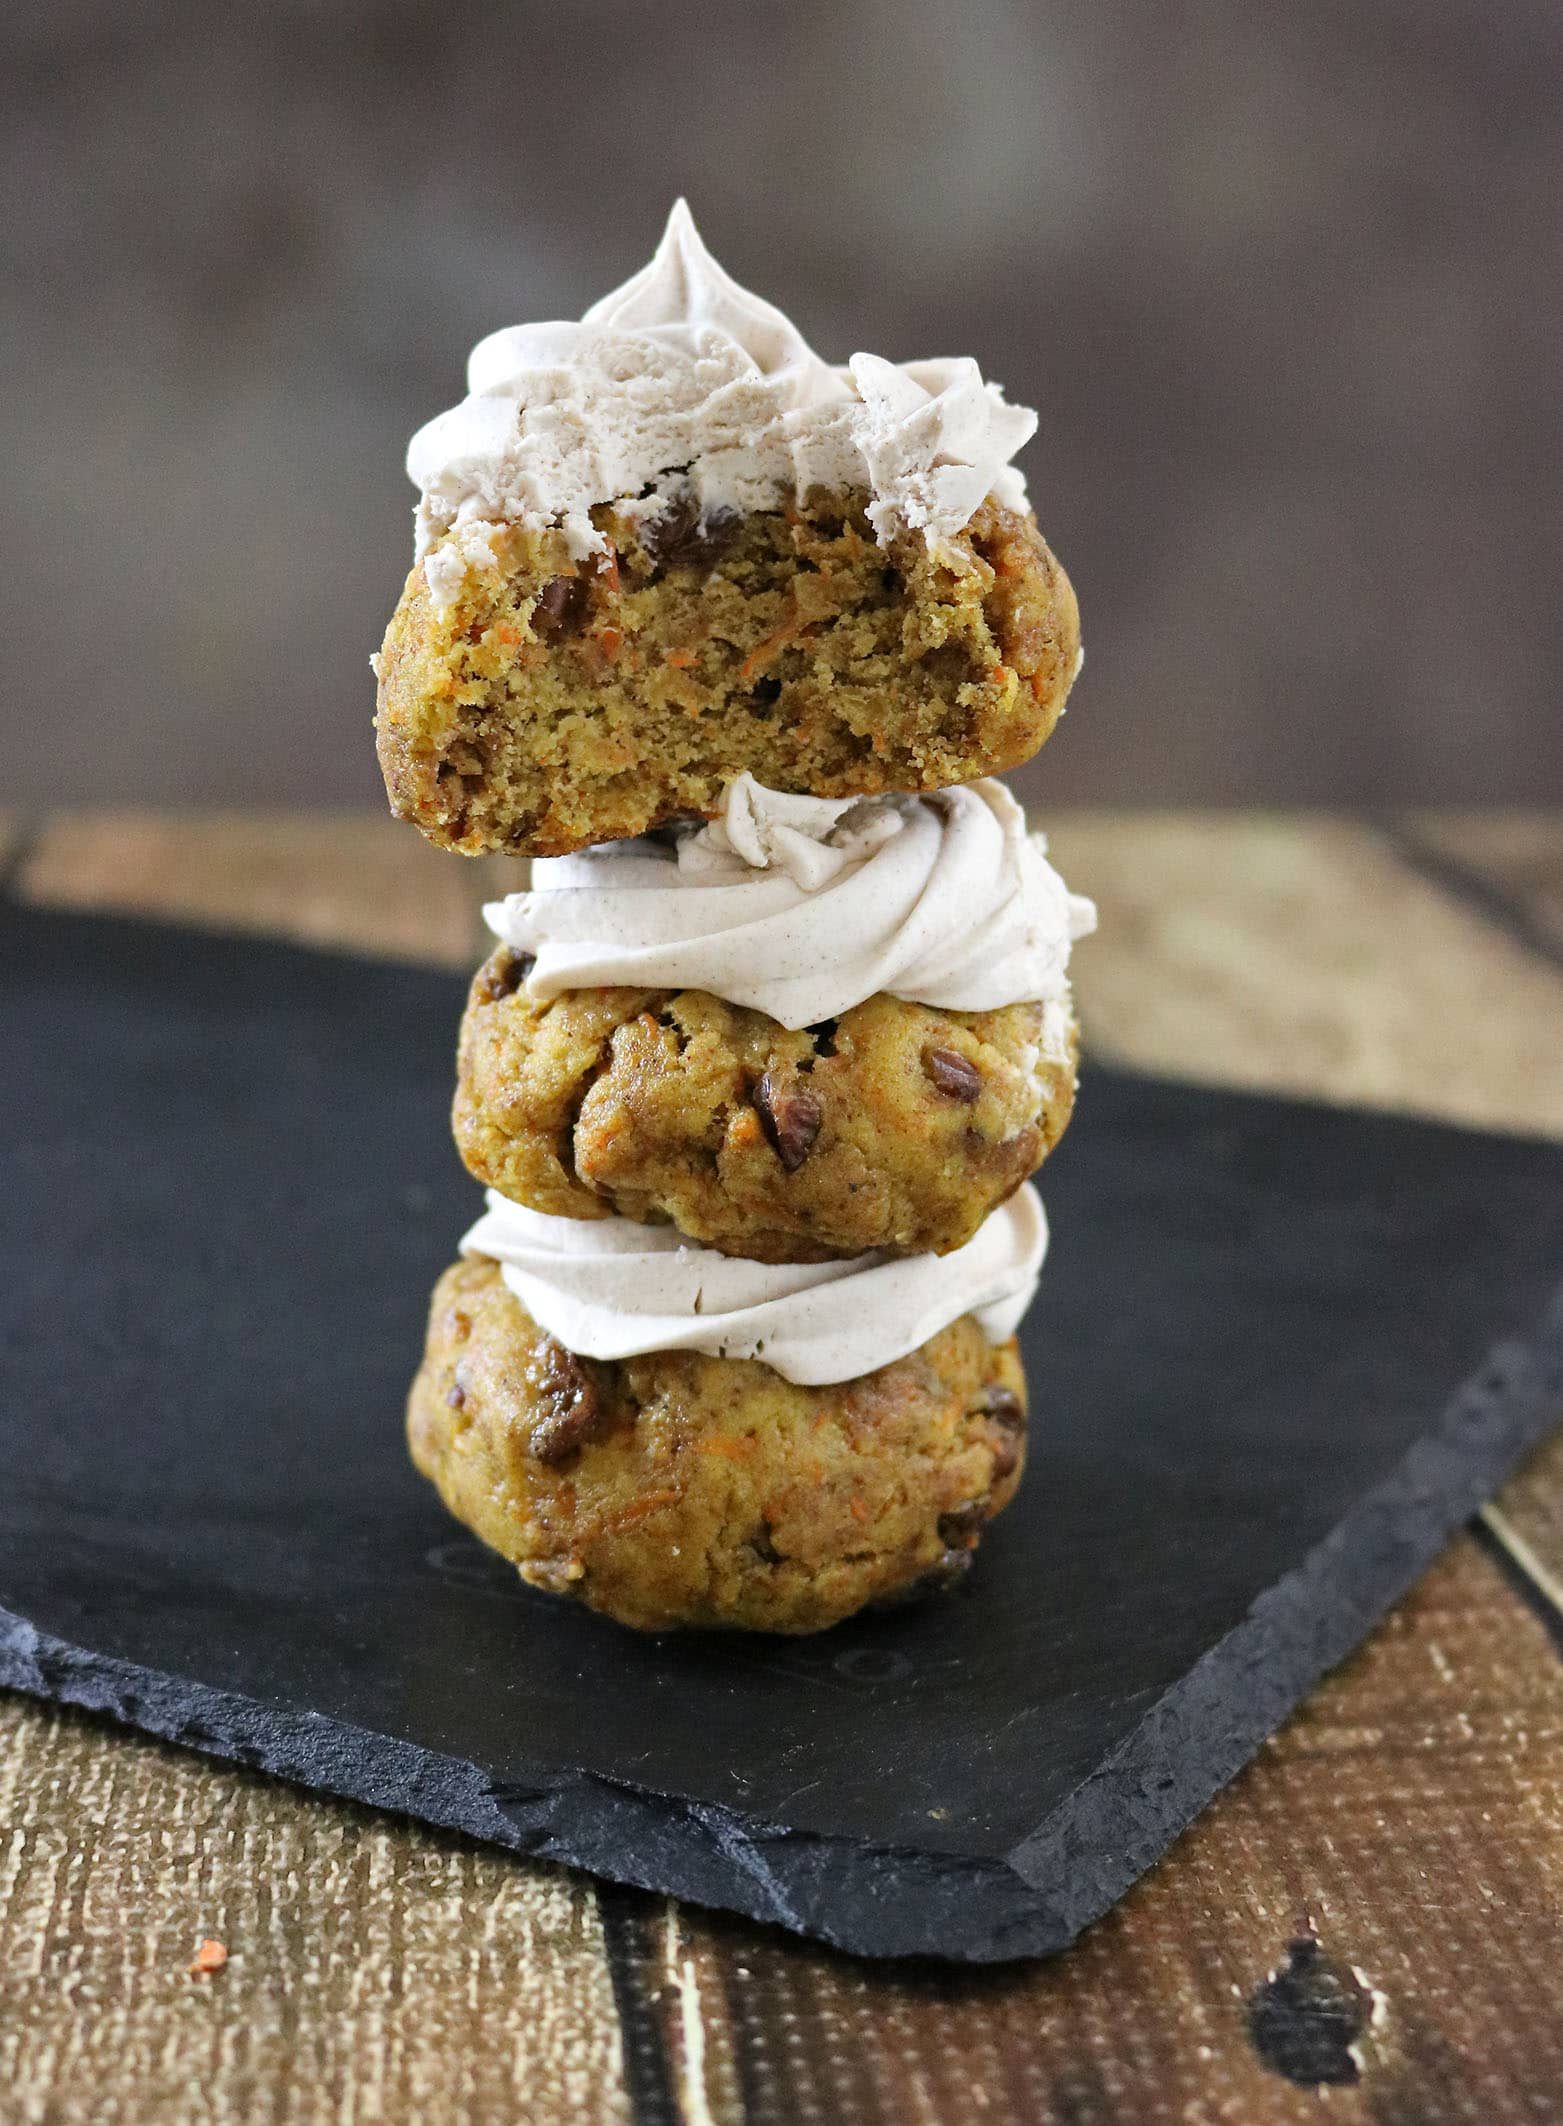 Carrot Cake Breakfast Cookies - Gluten Free and Refined Sugar-Free, the recipe for these can be found at RunninSrilankan.com